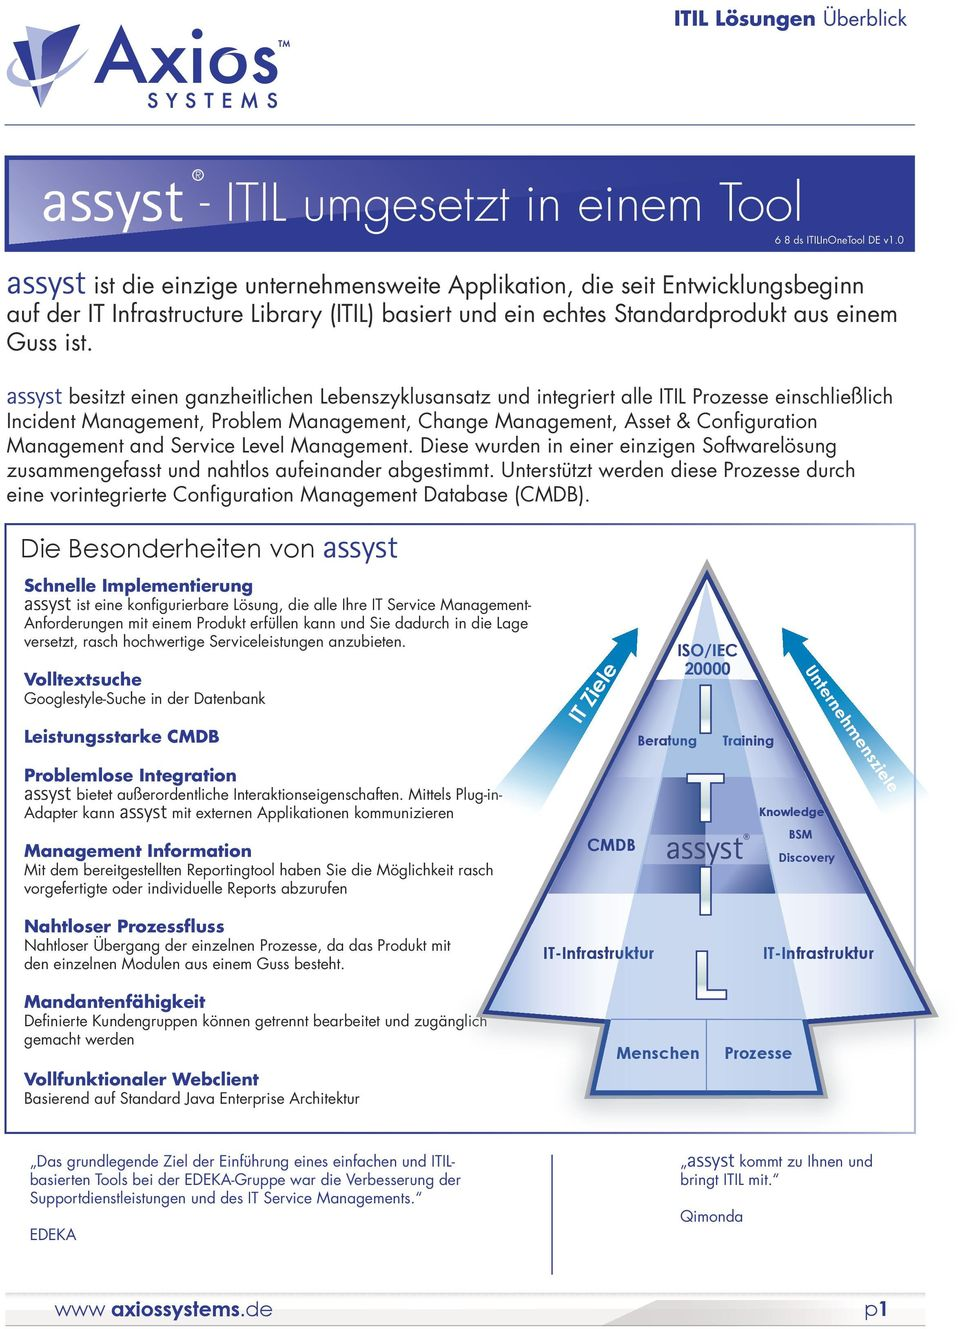 assyst besitzt einen ganzheitlichen Lebenszyklusansatz und integriert alle ITIL Prozesse einschließlich Incident Management, Problem Management, Change Management, Asset & Configuration Management